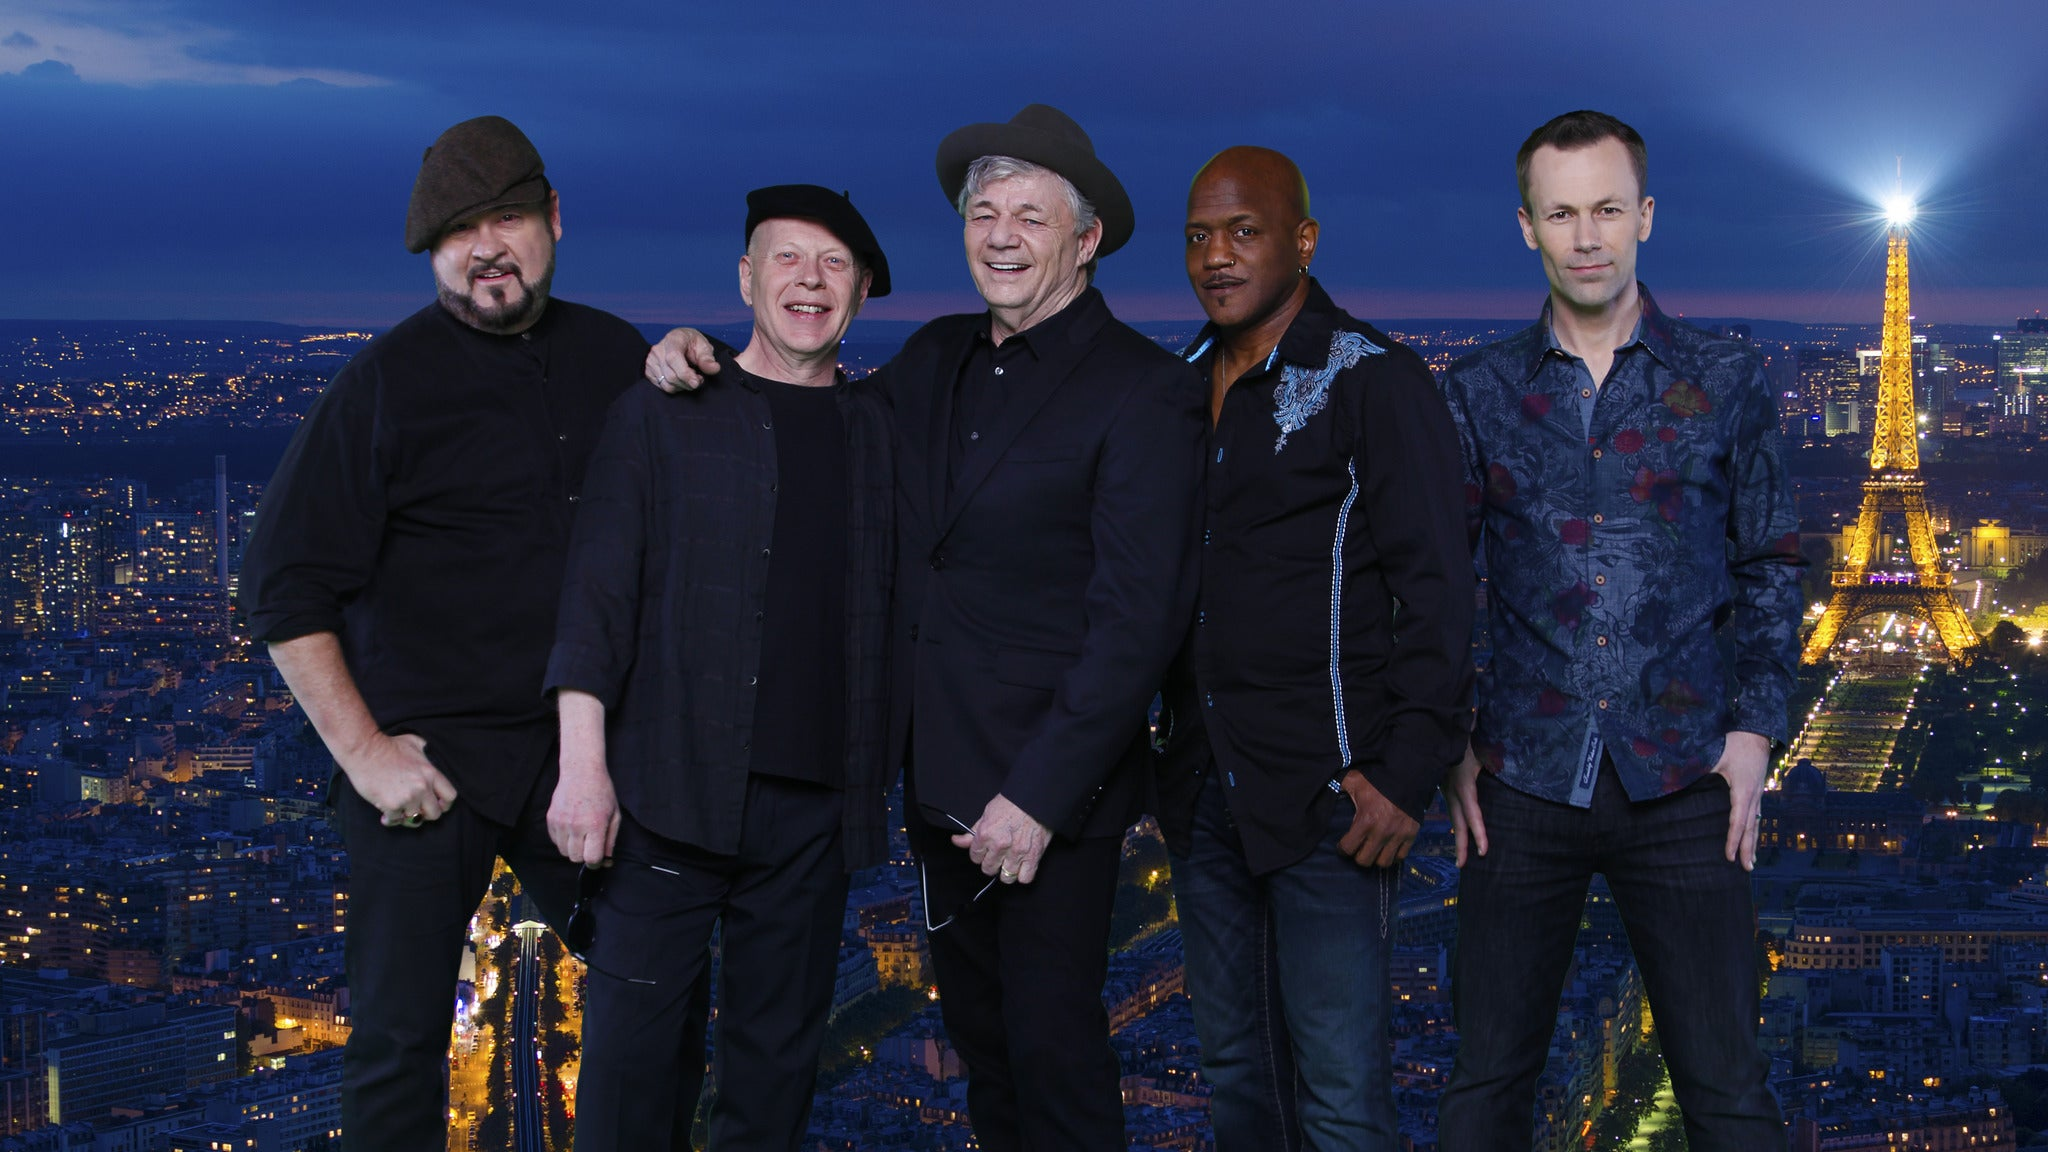 Steve Miller Band with Peter Frampton at Ford Center